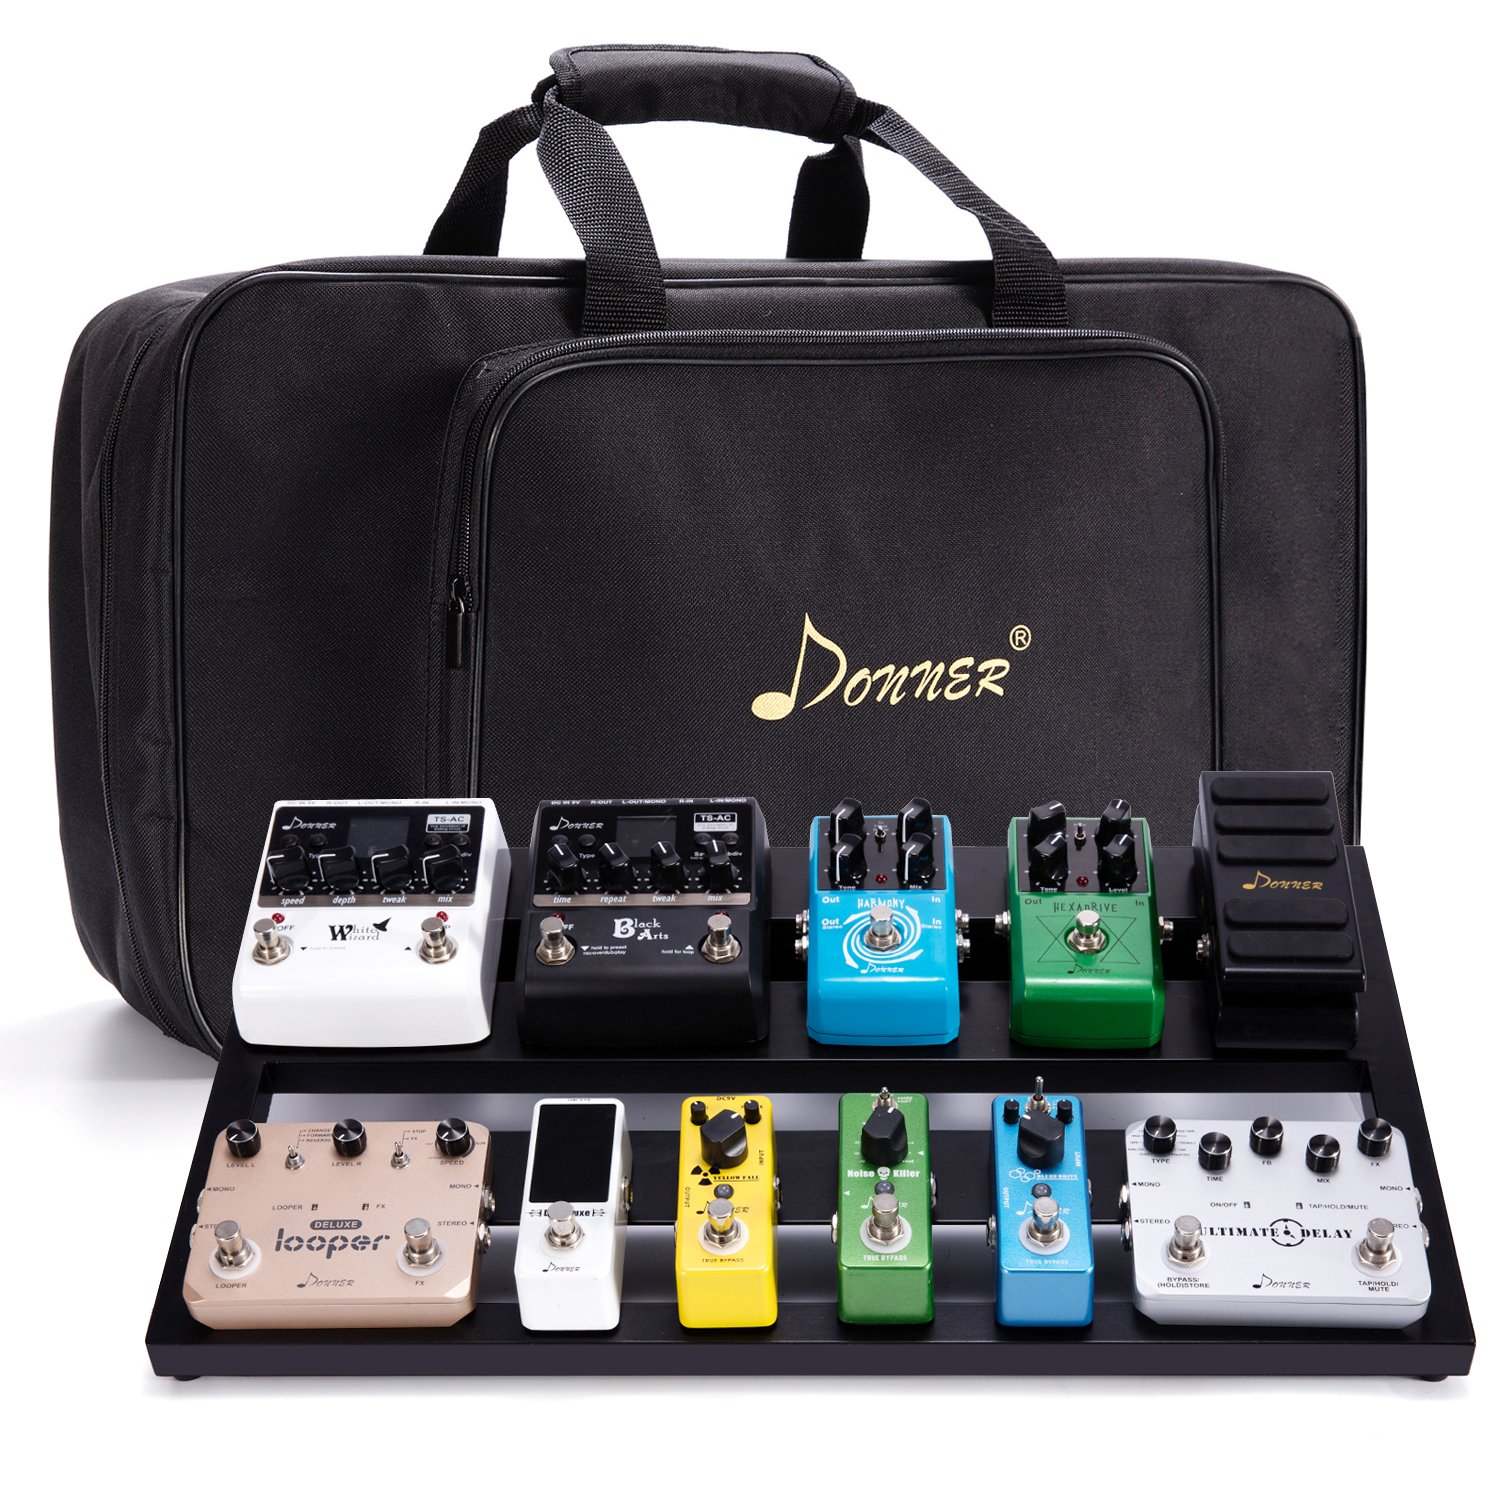 Donner Guitar Pedal Board Case DB-3 Aluminium Pedalboard 20'' x 11.4'' x 4'' with Bag by Donner (Image #1)